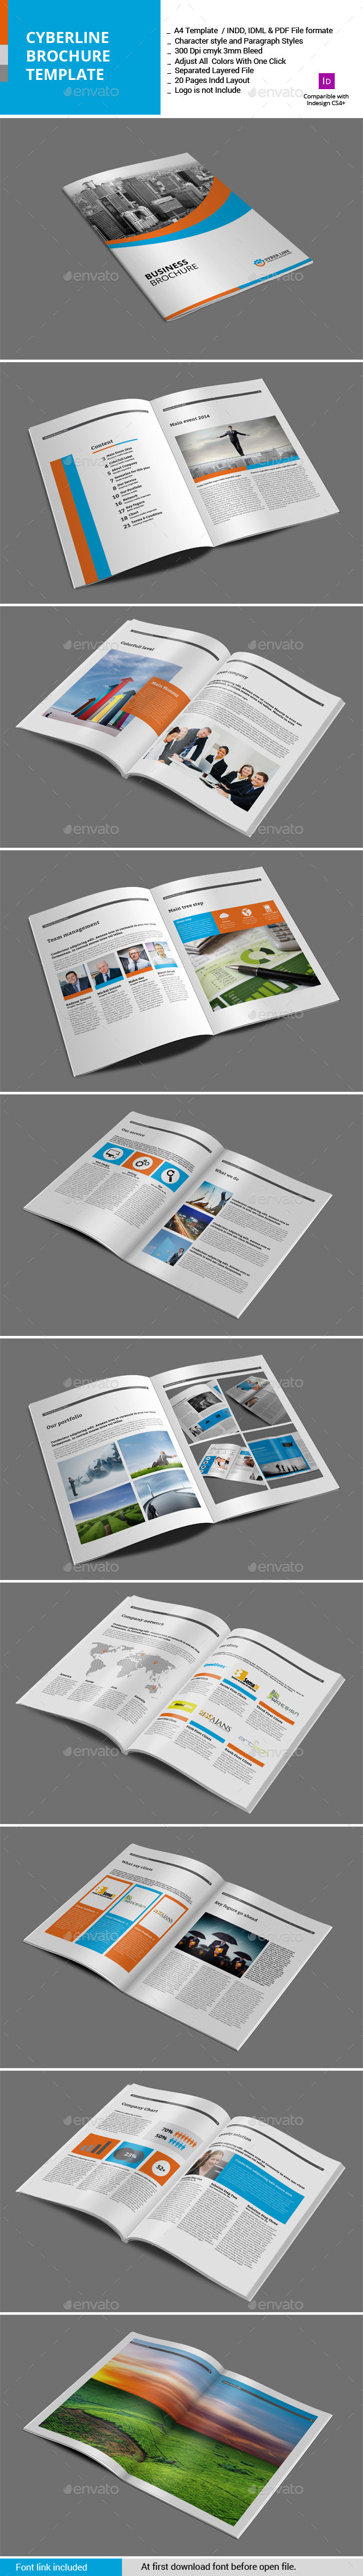 GraphicRiver Syberline Brochure Template 11446166